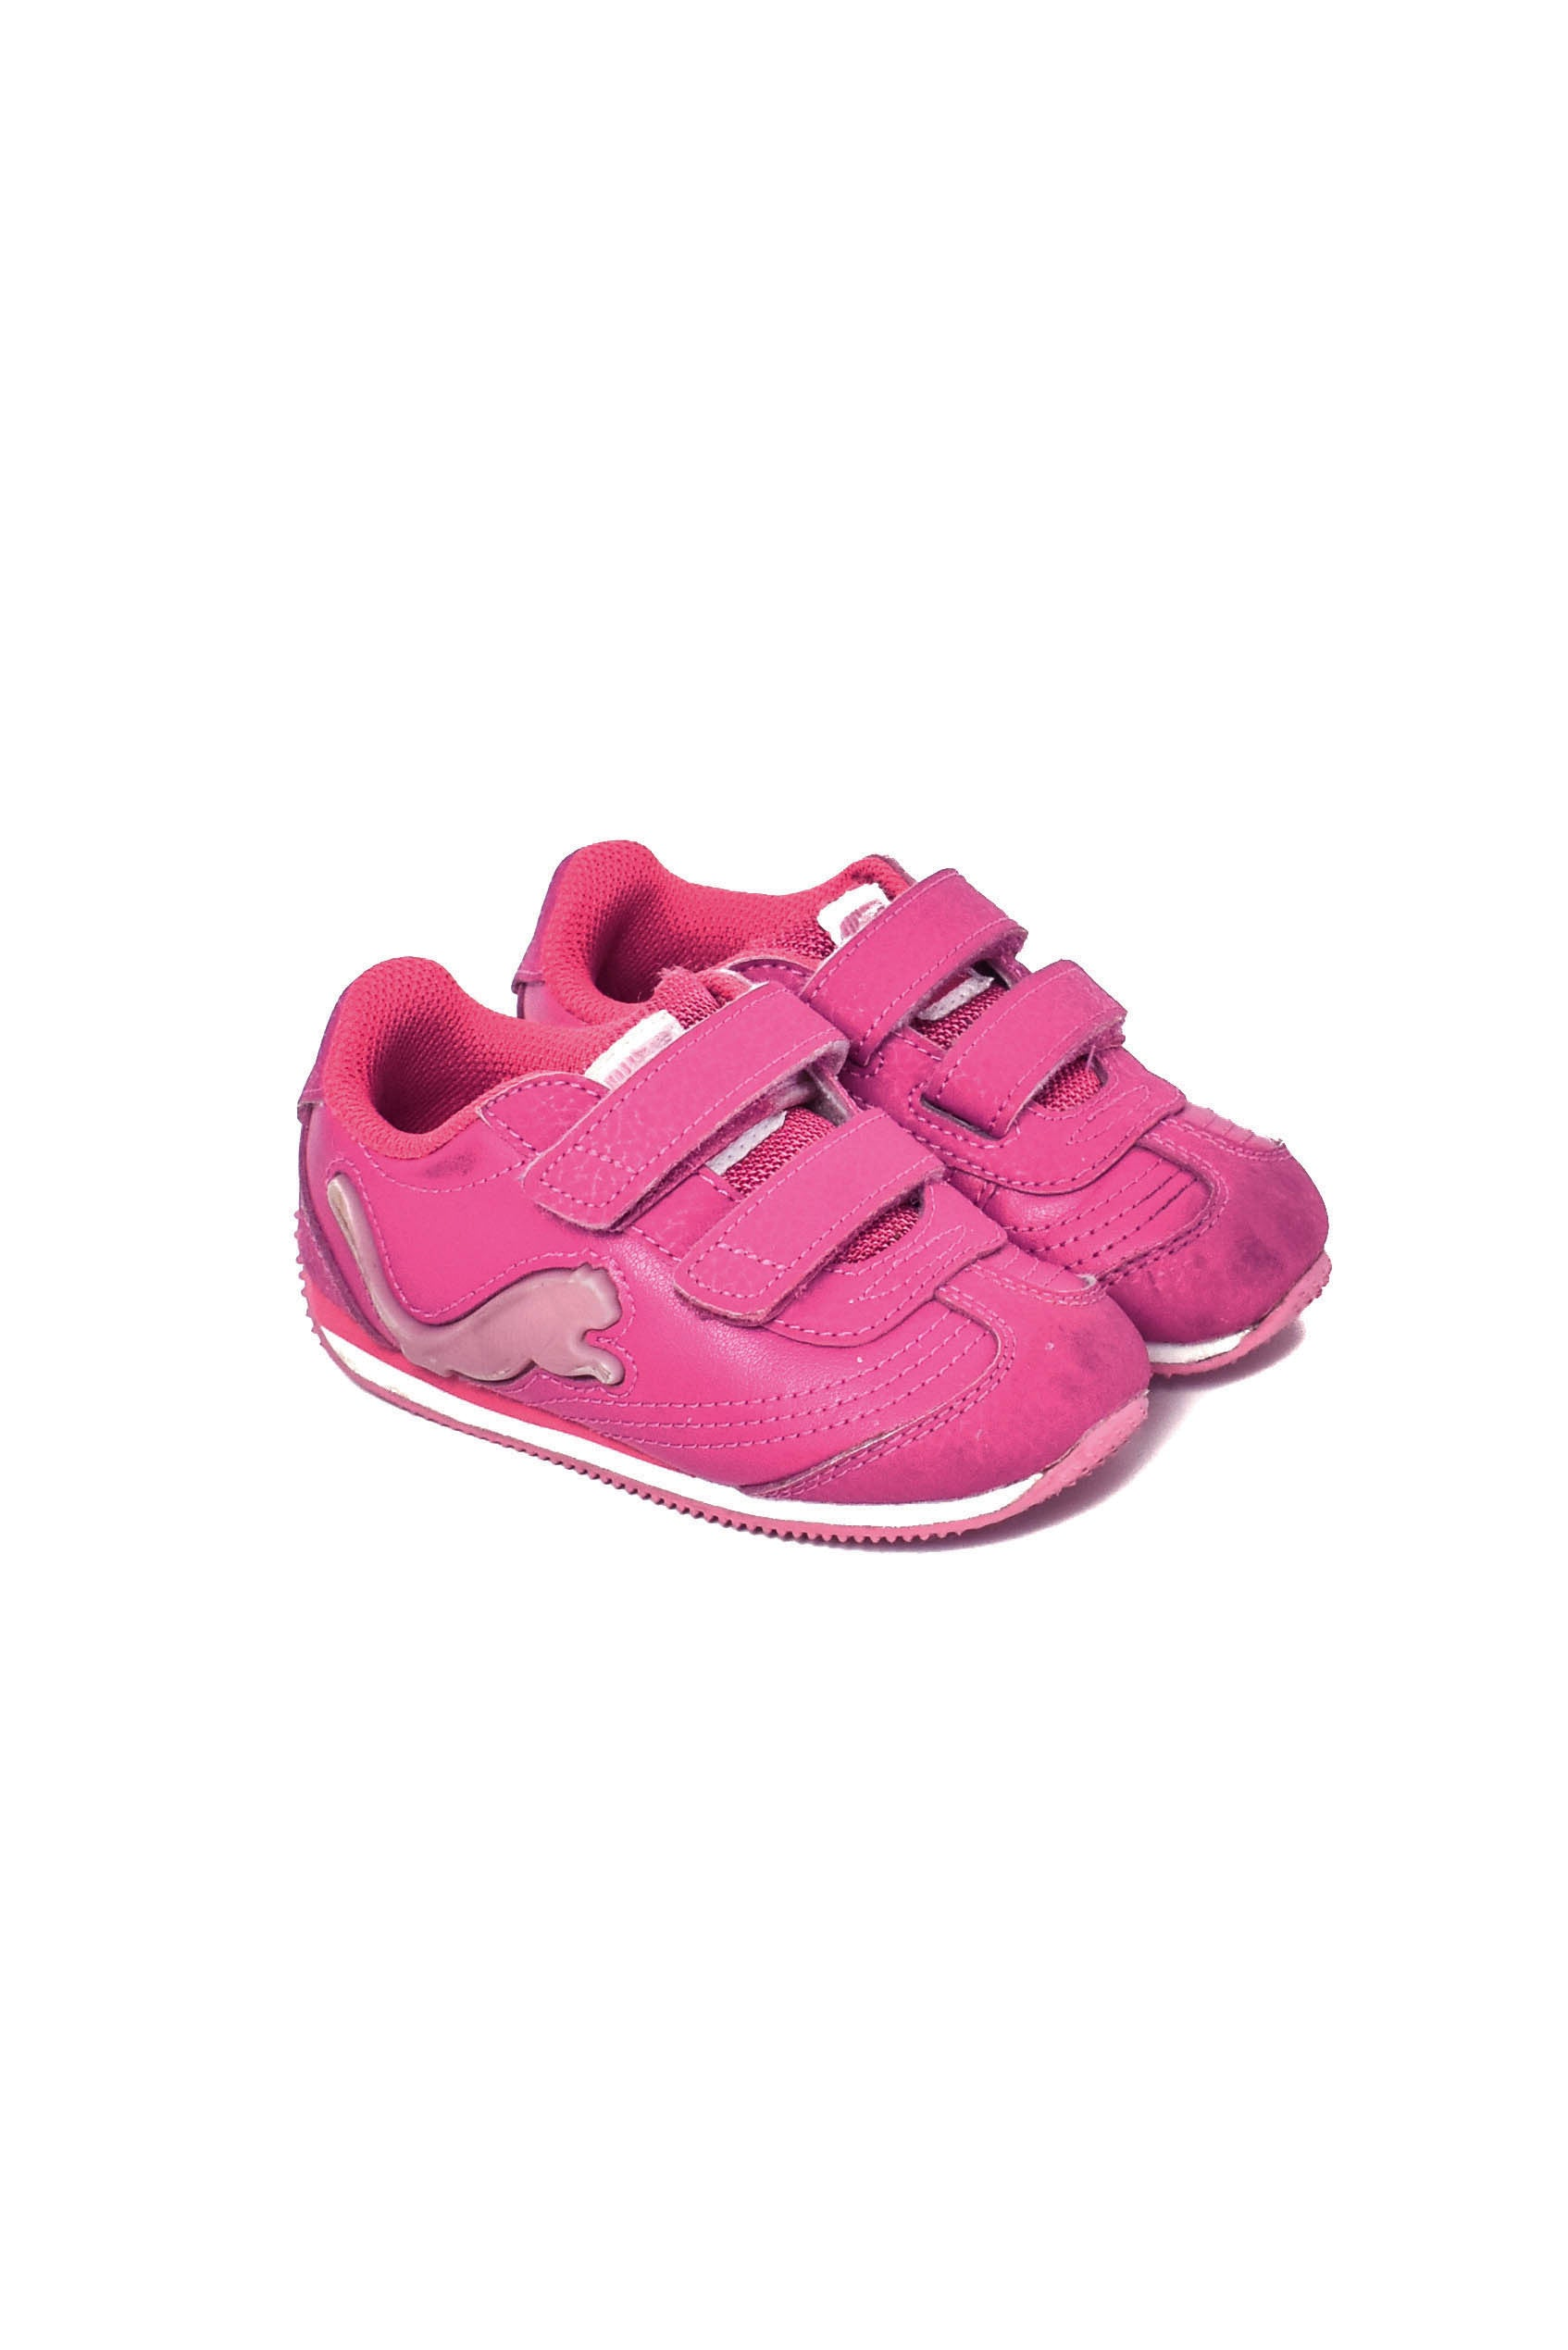 10003712 Puma Baby~Shoes 18-24M (EU 23) at Retykle